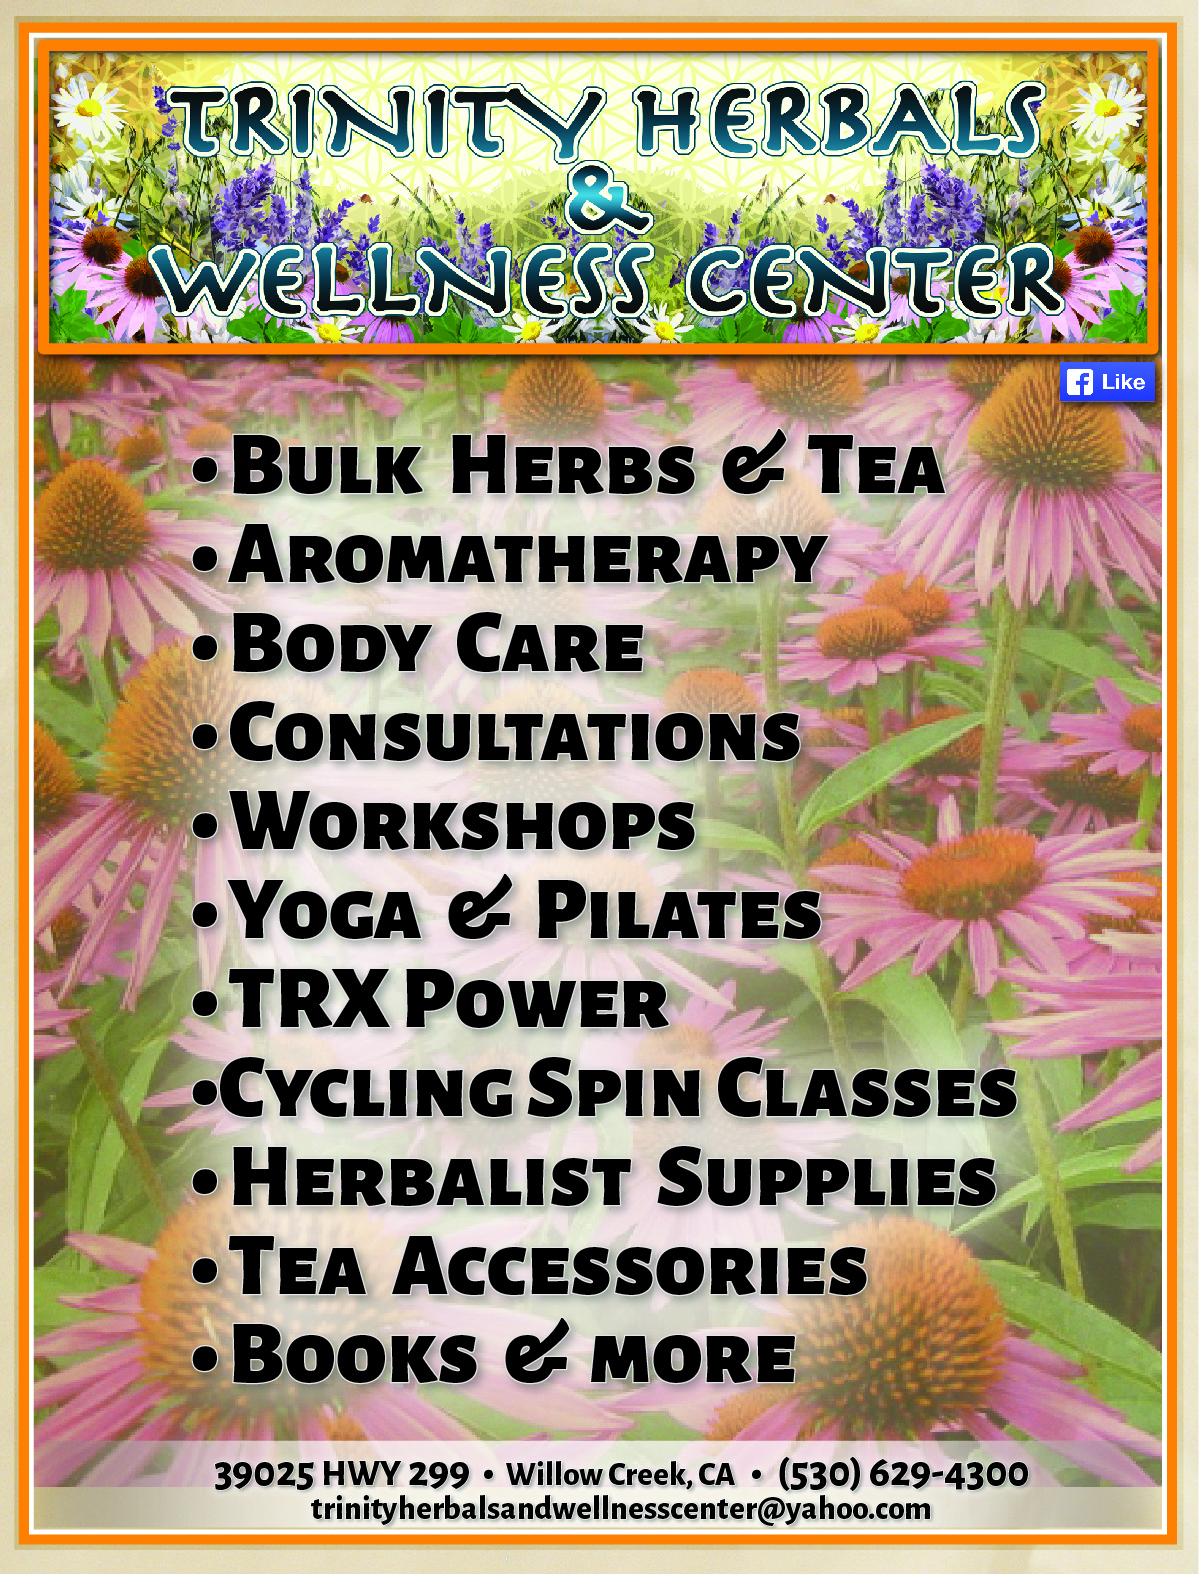 Trinity Herbal & Wellness Center